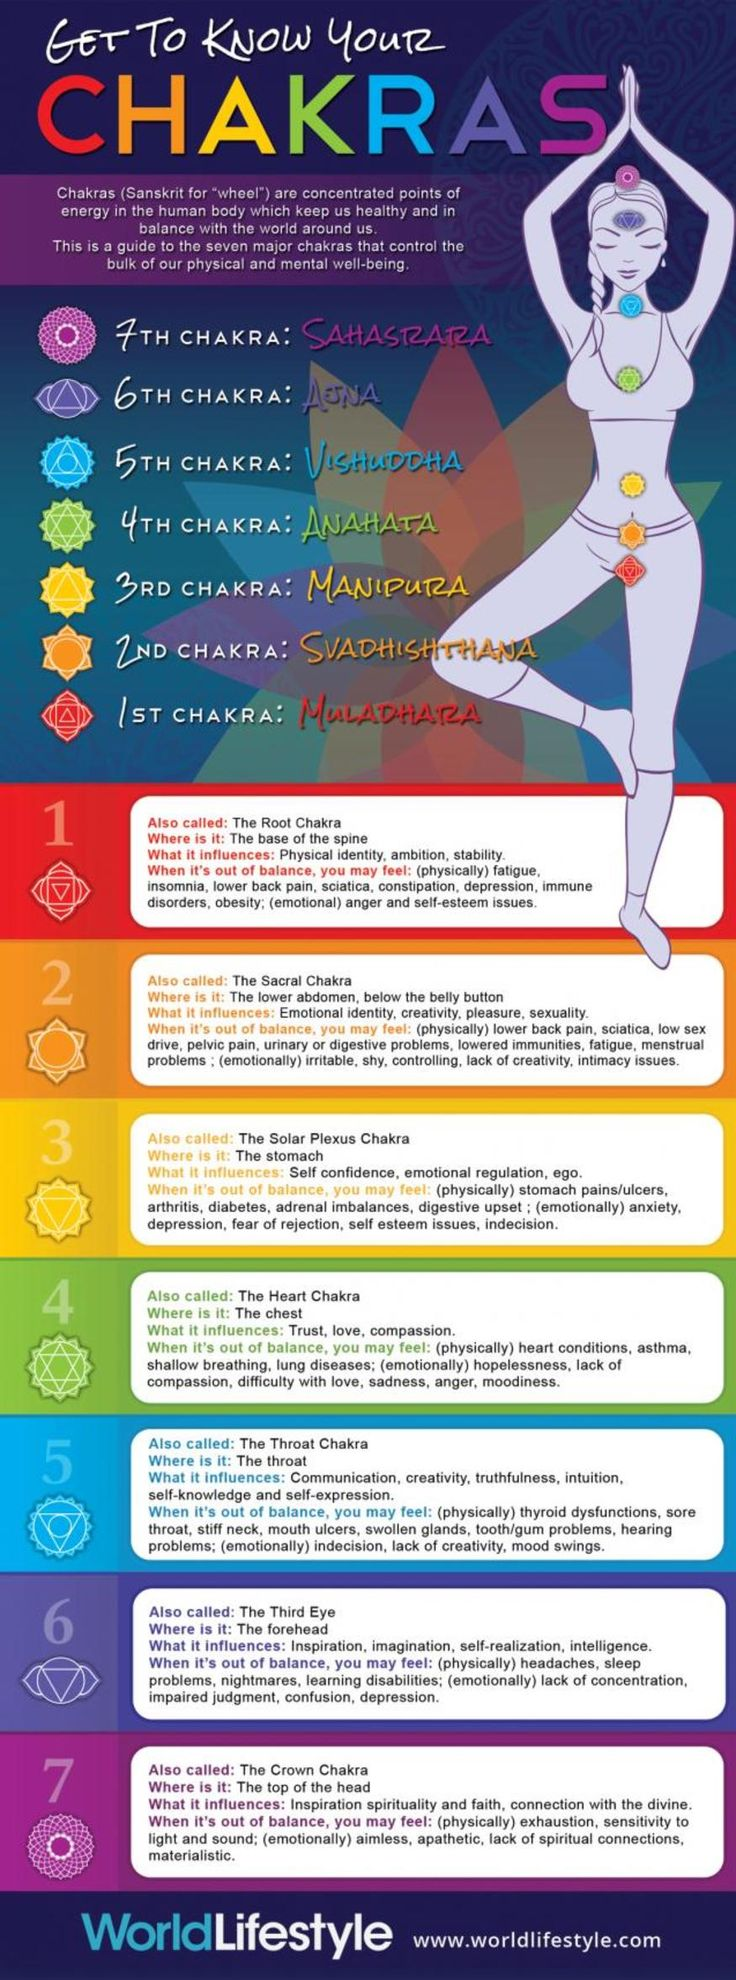 Do you know your chakras? Well get to know it with this little cheat sheet! Visit Walgreens.com to get all the yoga and Pilates equipment you need. More